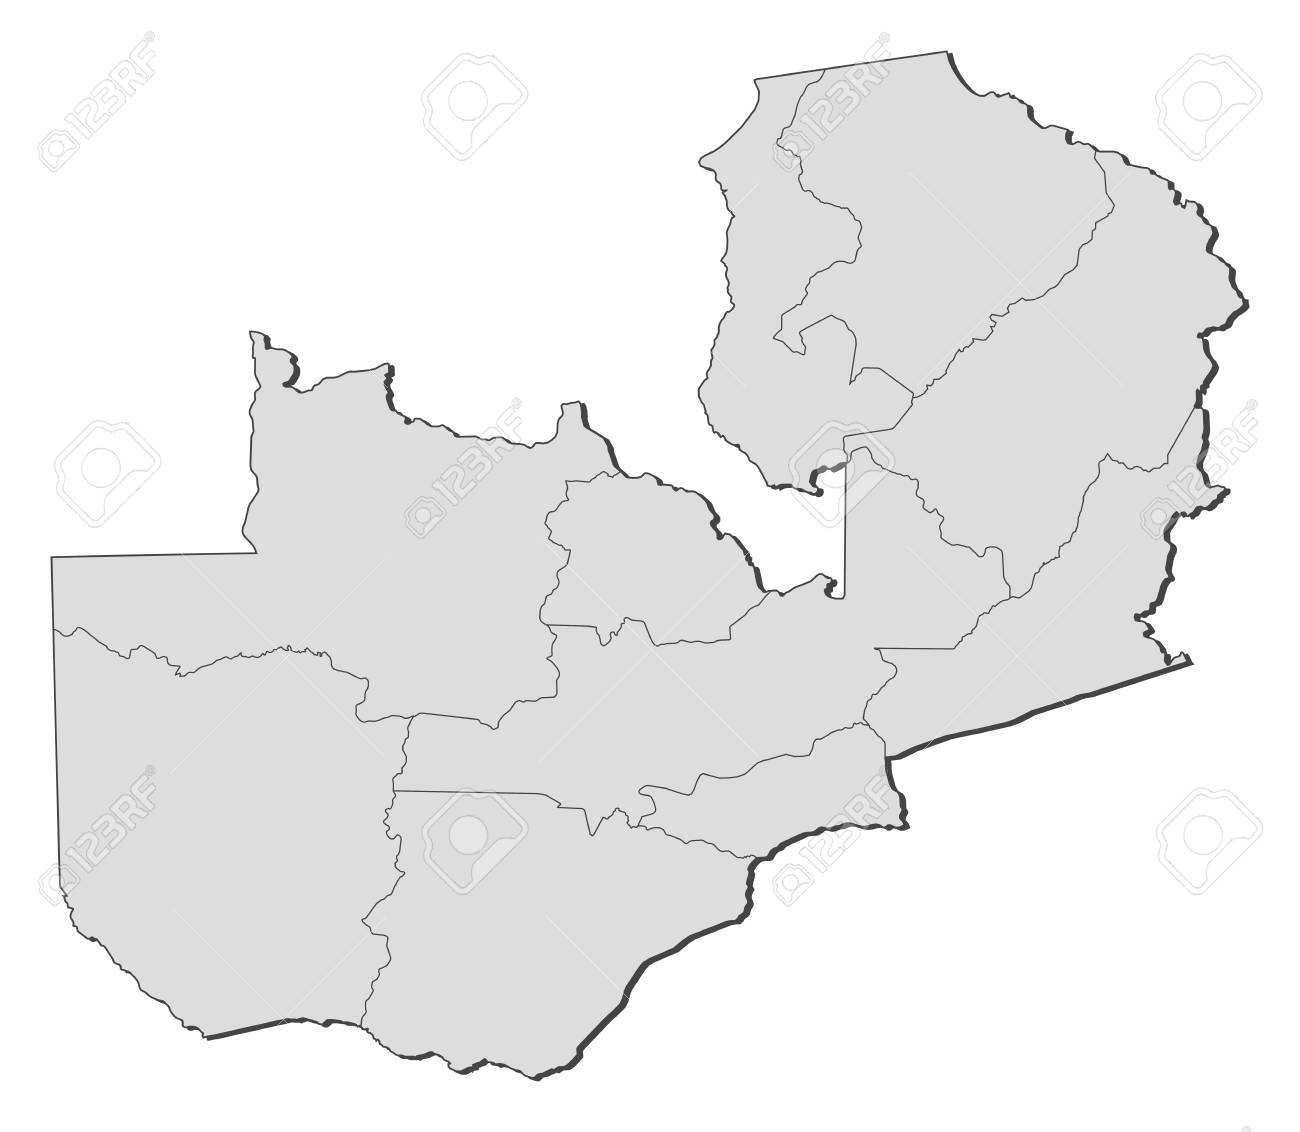 Zambian Map Vector.Map Of Zambia With The Provinces